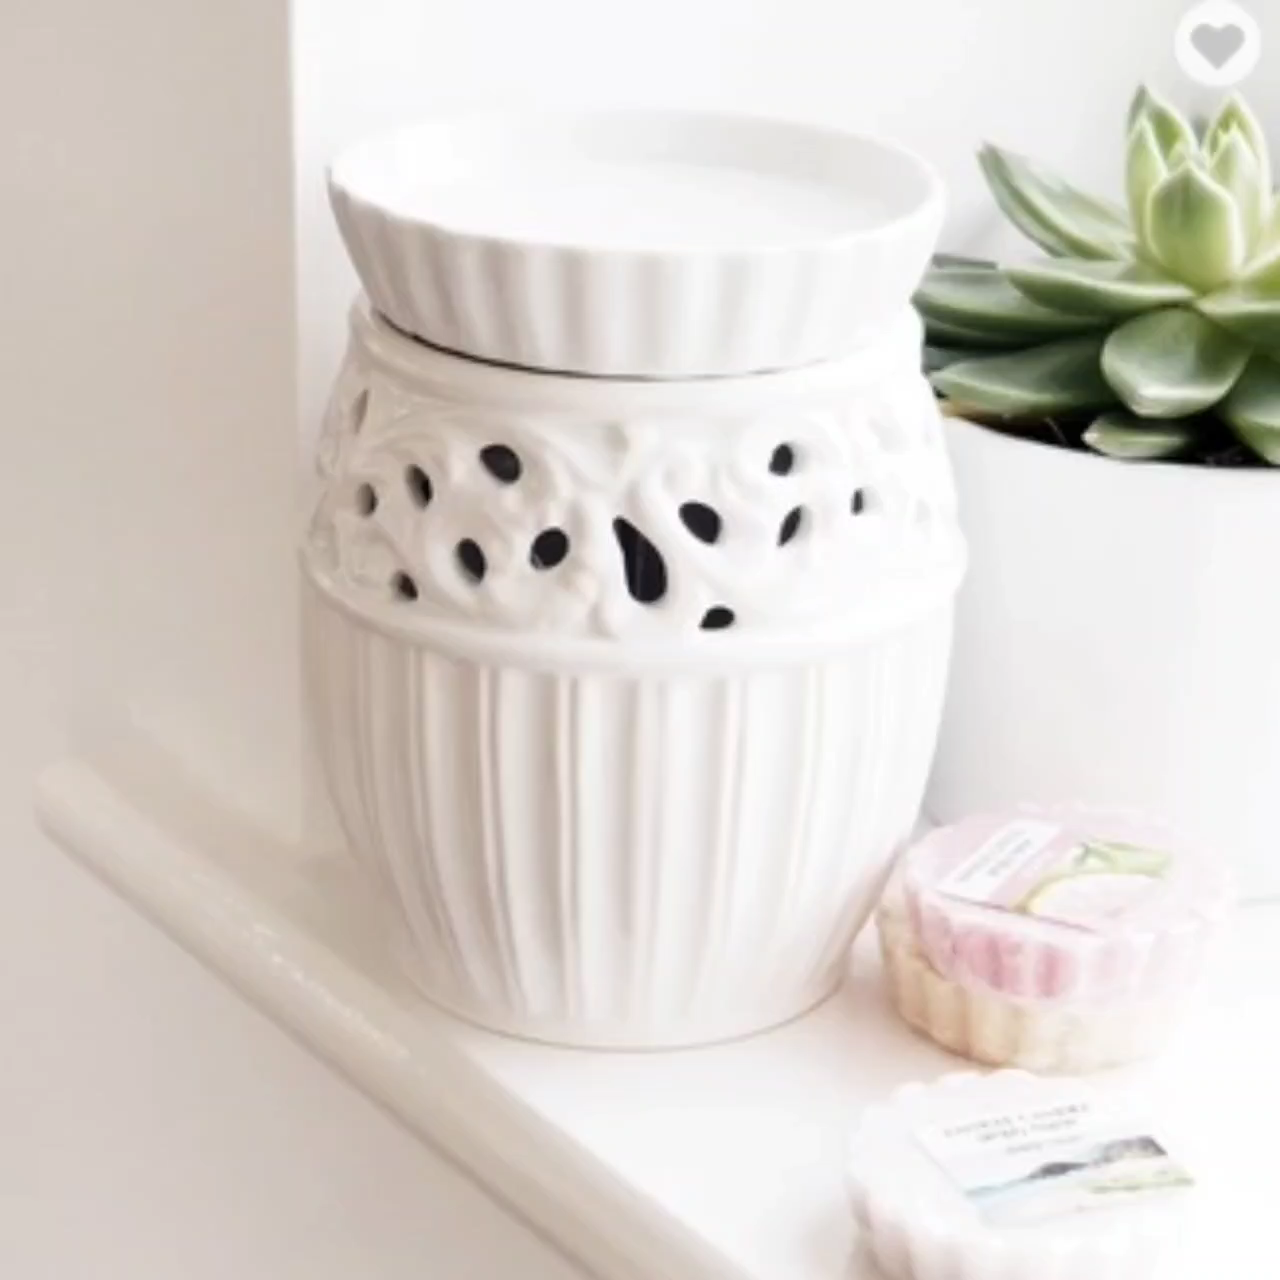 White electric scented ceramic wax tart candle warmer melt plug in diffuser essential oil diffuser aroma burner Christmas gift